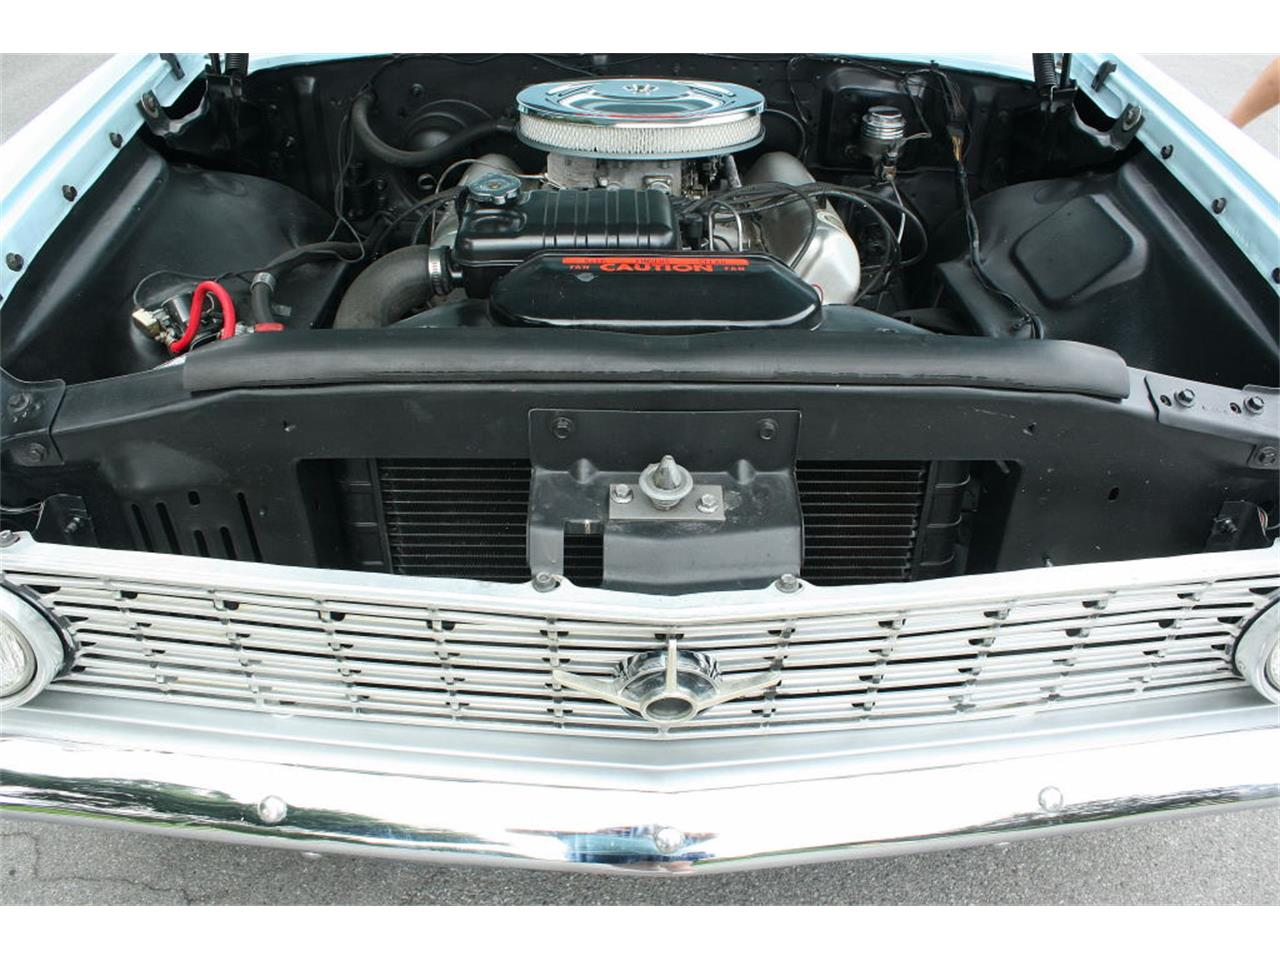 Large Picture of 1962 Ford Galaxie located in Lakeland Florida - $26,500.00 Offered by MJC Classic Cars - L6EK